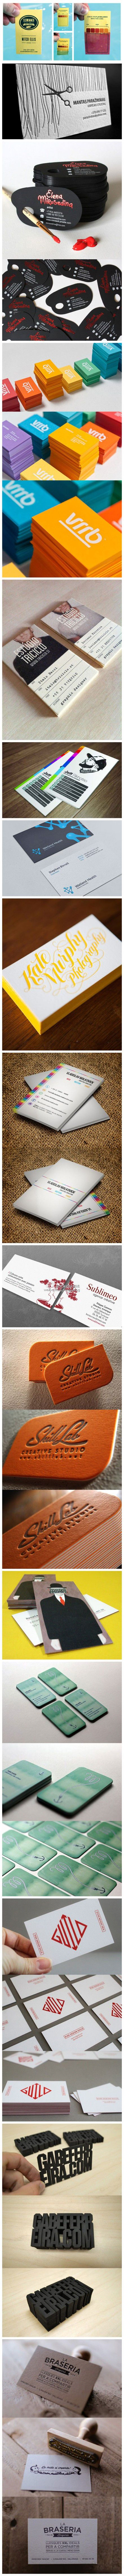 236 best BRAND Business Cards images on Pinterest